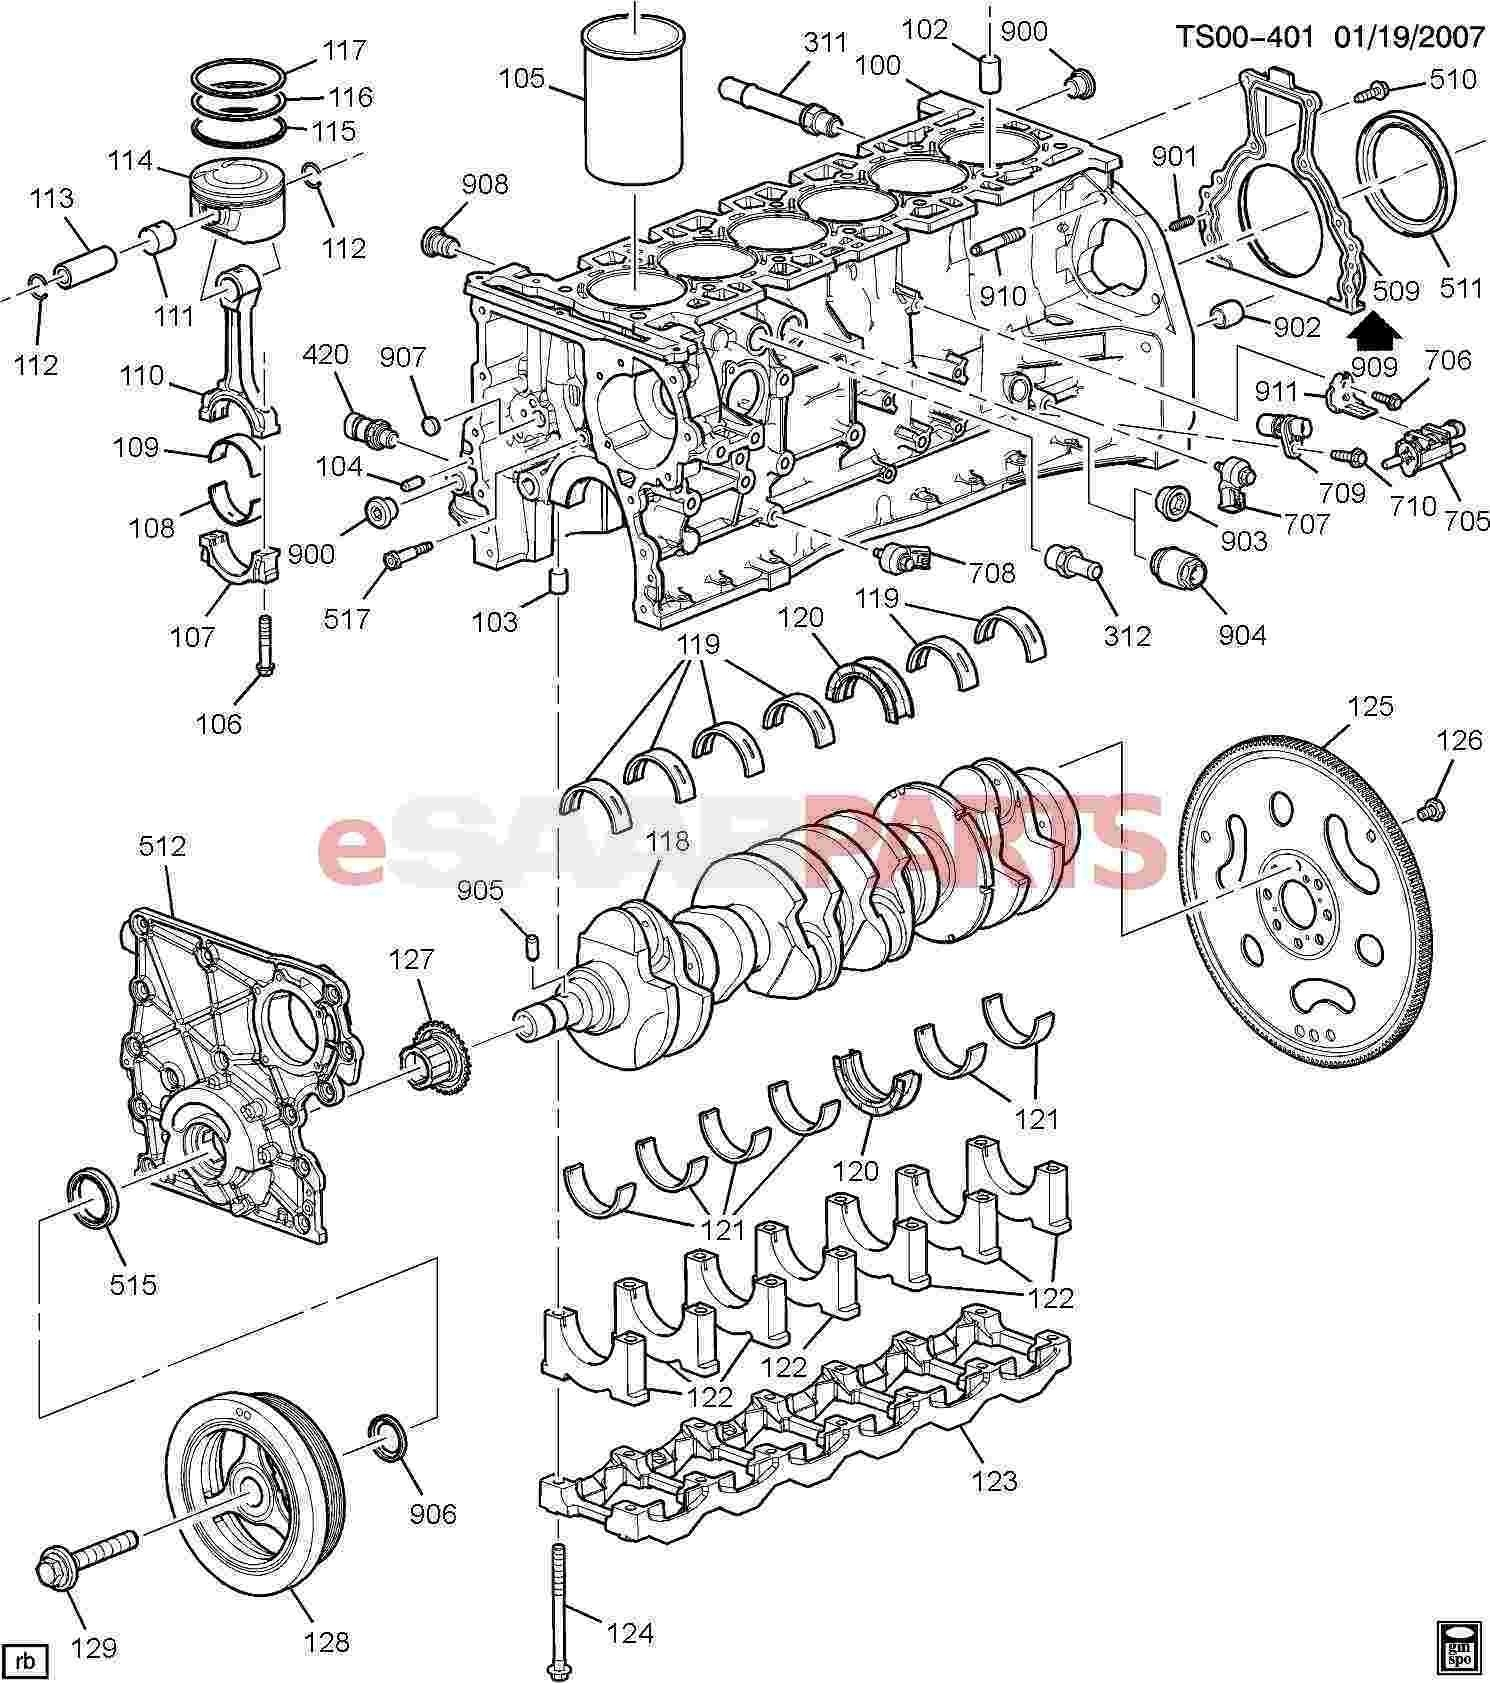 Car Body Parts Names Diagram Car Parts Labeled Diagram Of Car Body Parts Names Diagram